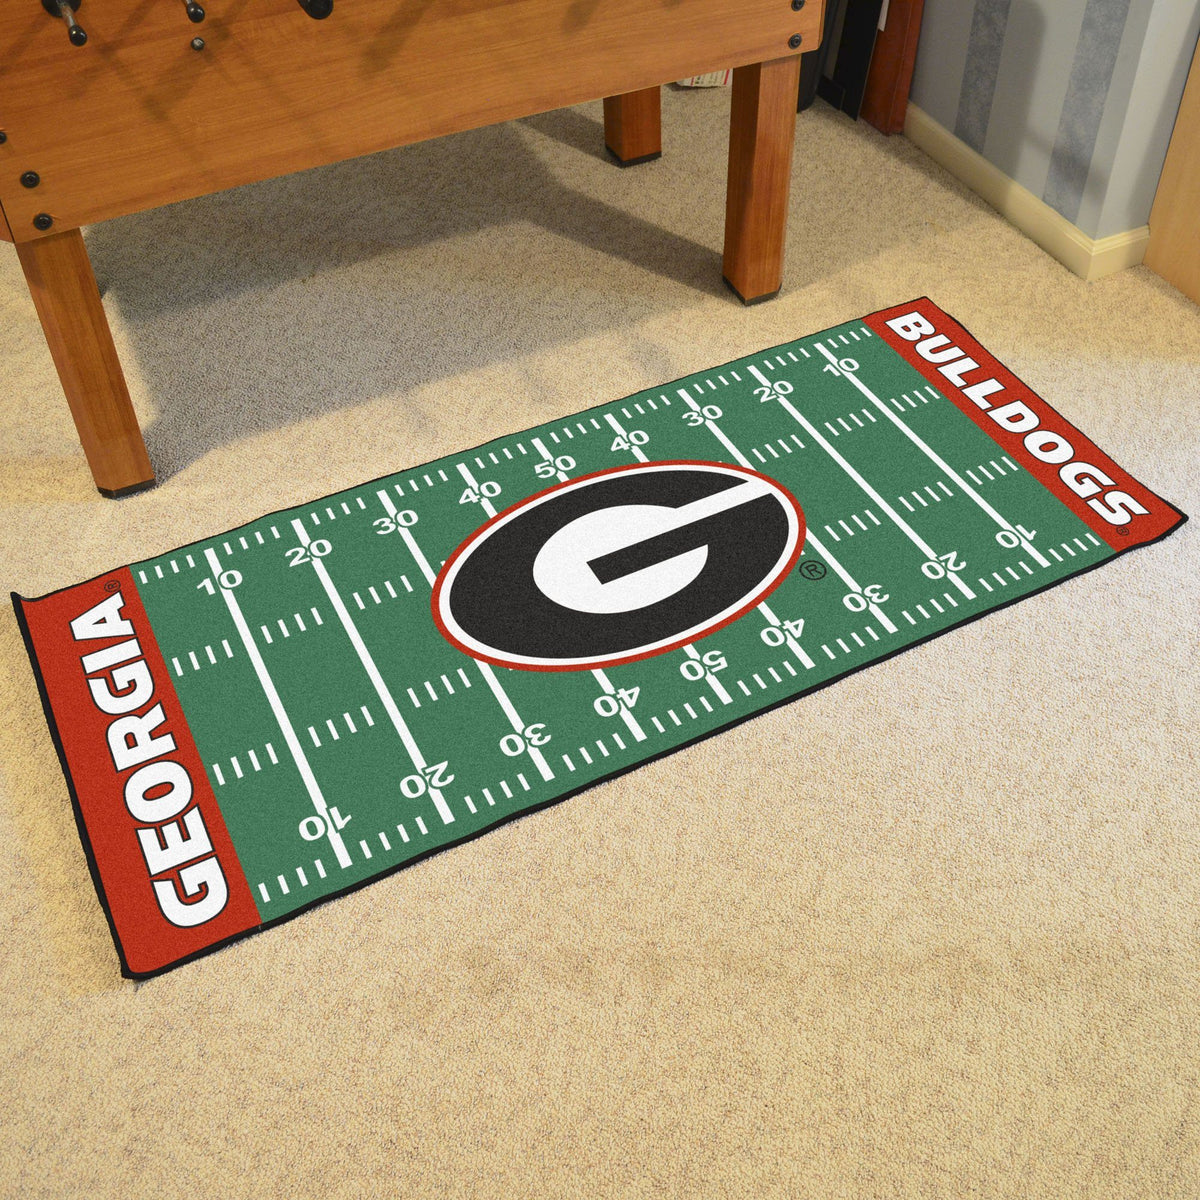 Collegiate - Football Field Runner Collegiate Mats, Rectangular Mats, Football Field Runner, Collegiate, Home Fan Mats Georgia